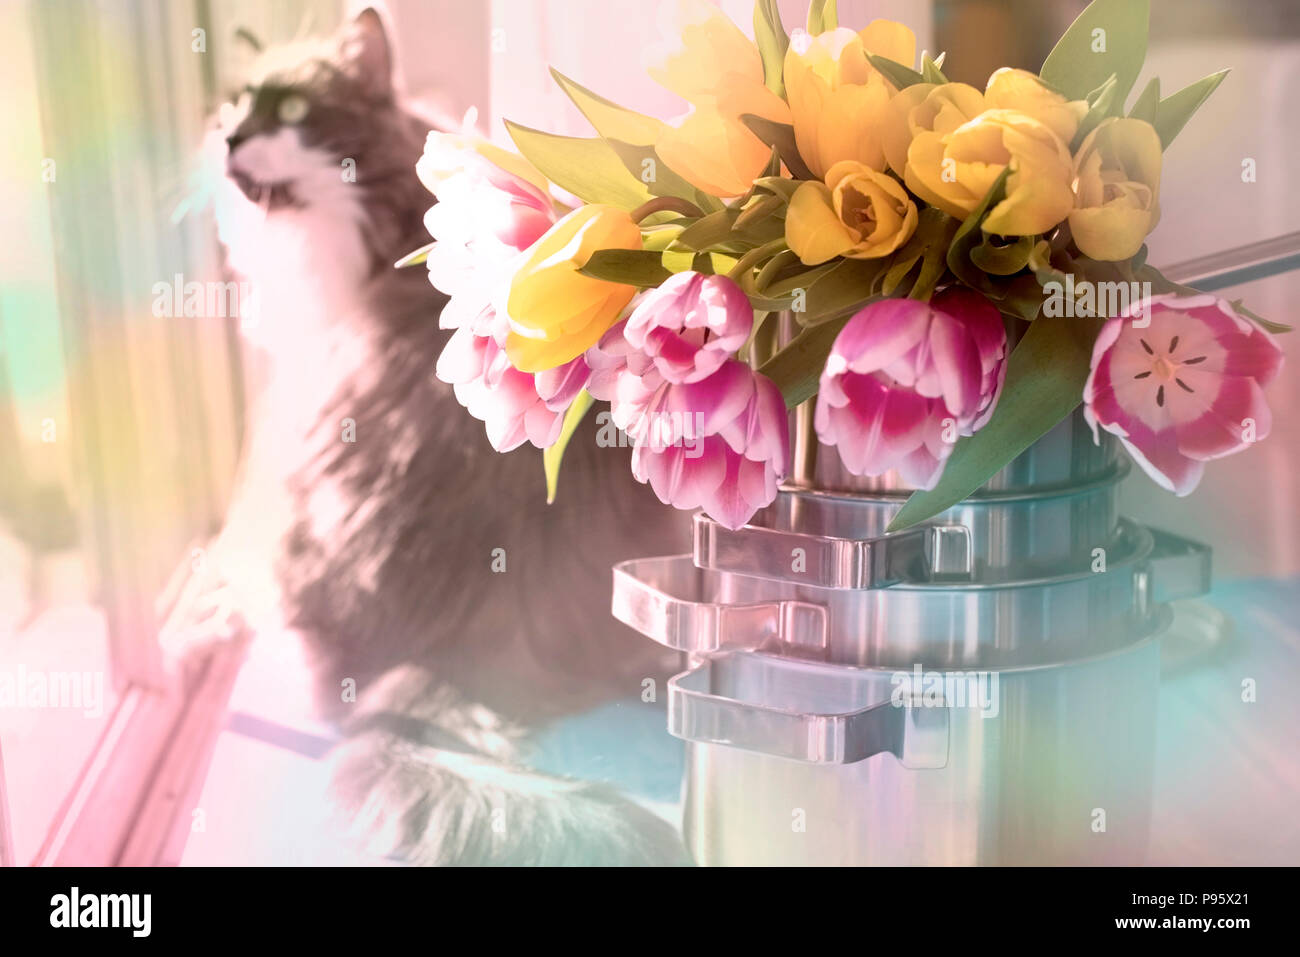 A Bouquet Of Spring Tulips In A Saucepan And A Fluffy Cat Sunlight